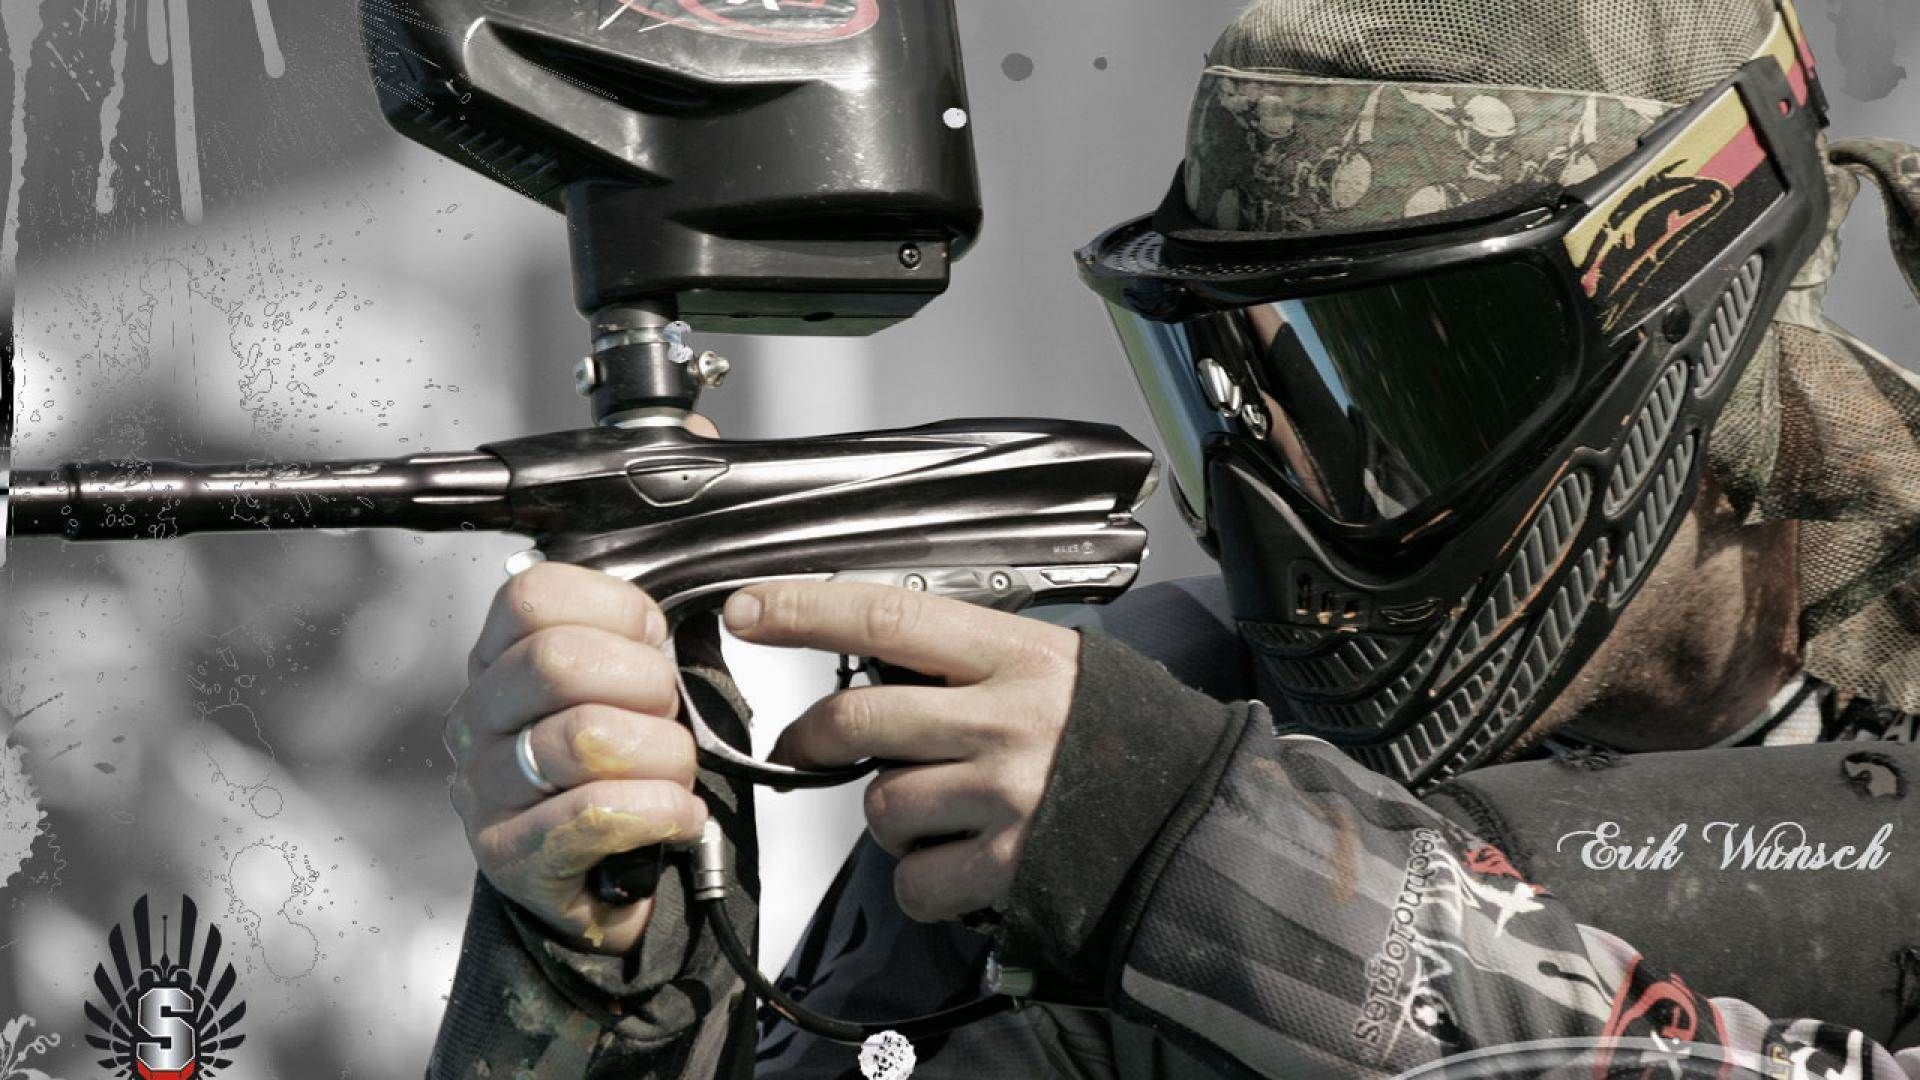 Undefined Paintball Wallpaper Adorable Wallpapers Art Wallpaper Paintball Wallpaper